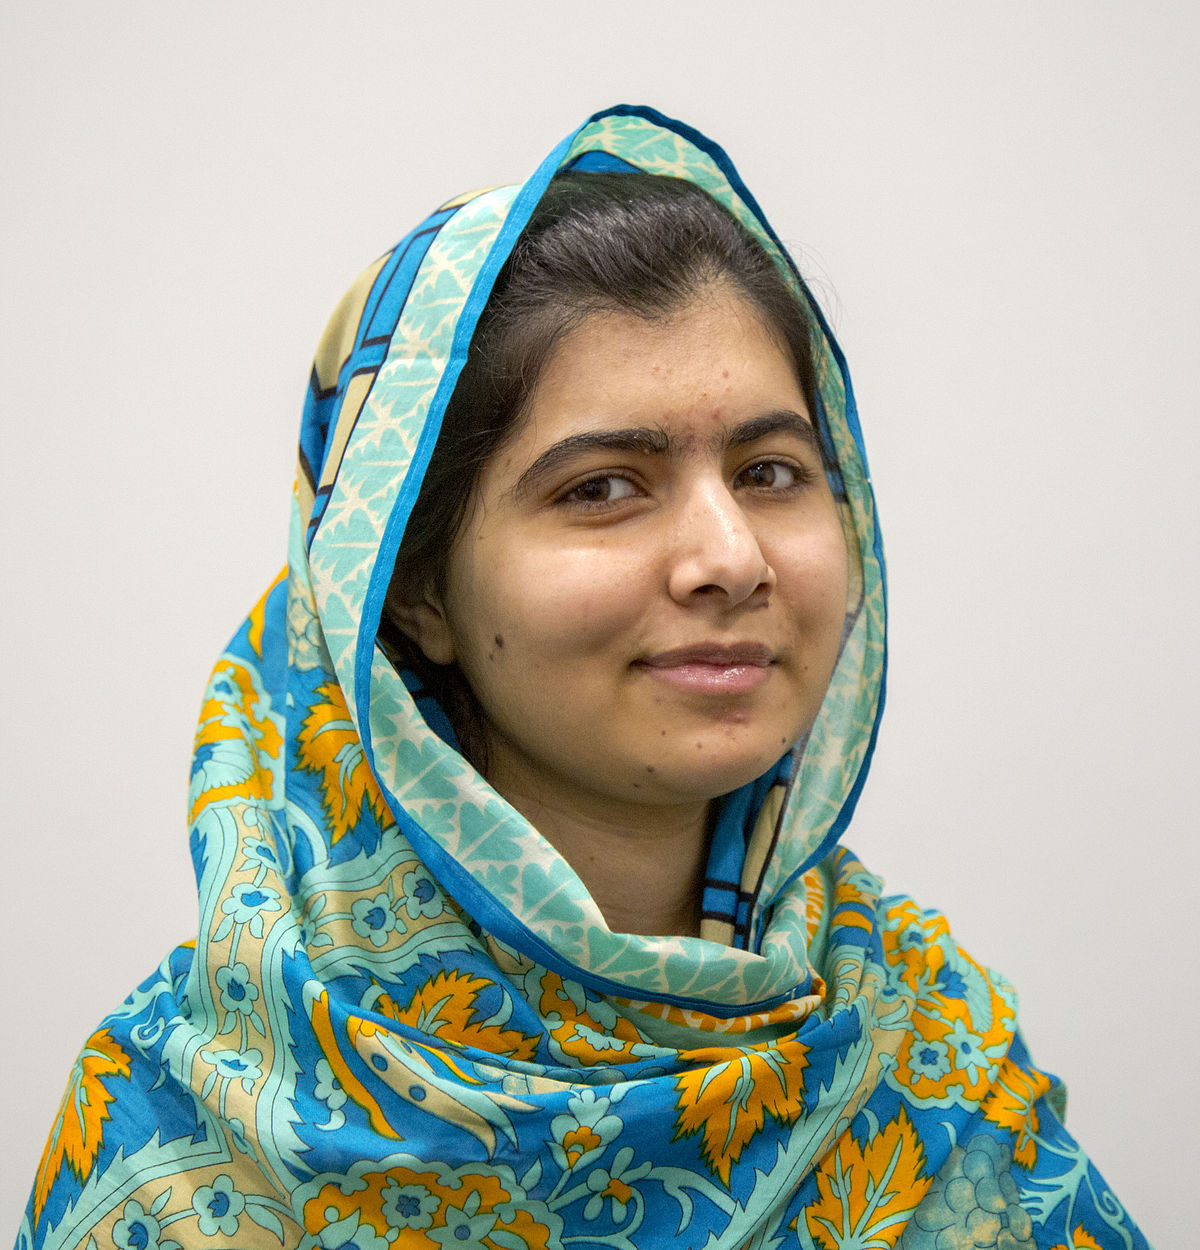 Malala Yousafzi- Exemplary Portrait of Bravery